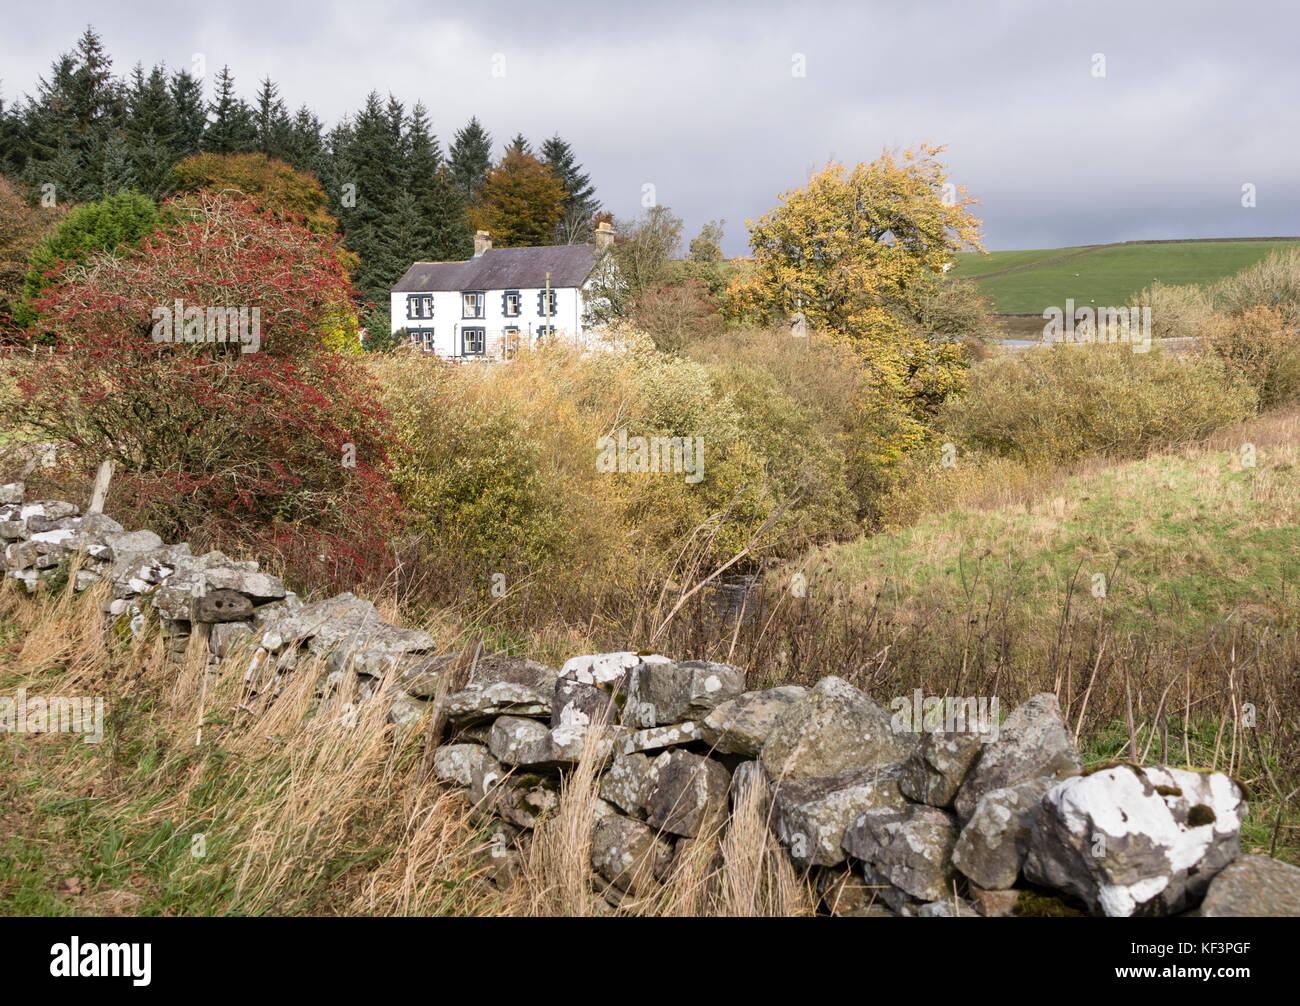 Autumn at Langdon Beck Hotel, Foerest in Teesdale, Upper Teesdale, County Durham, England, UK - Stock Image